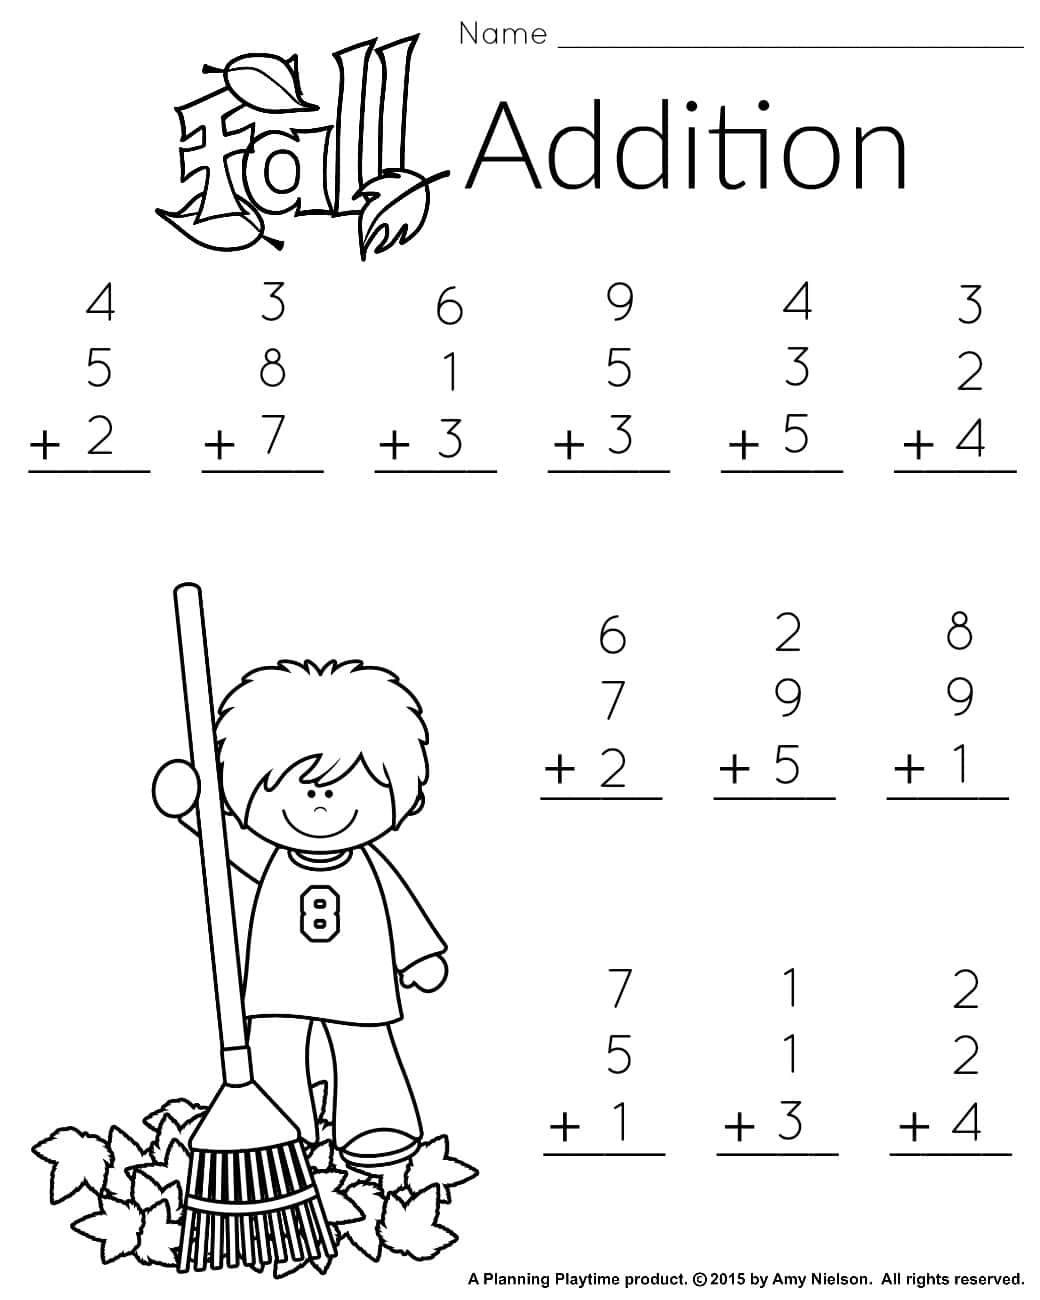 Subtraction Worksheet for 1st Grade Free Printable Math Worksheets for Grade 1 and 2